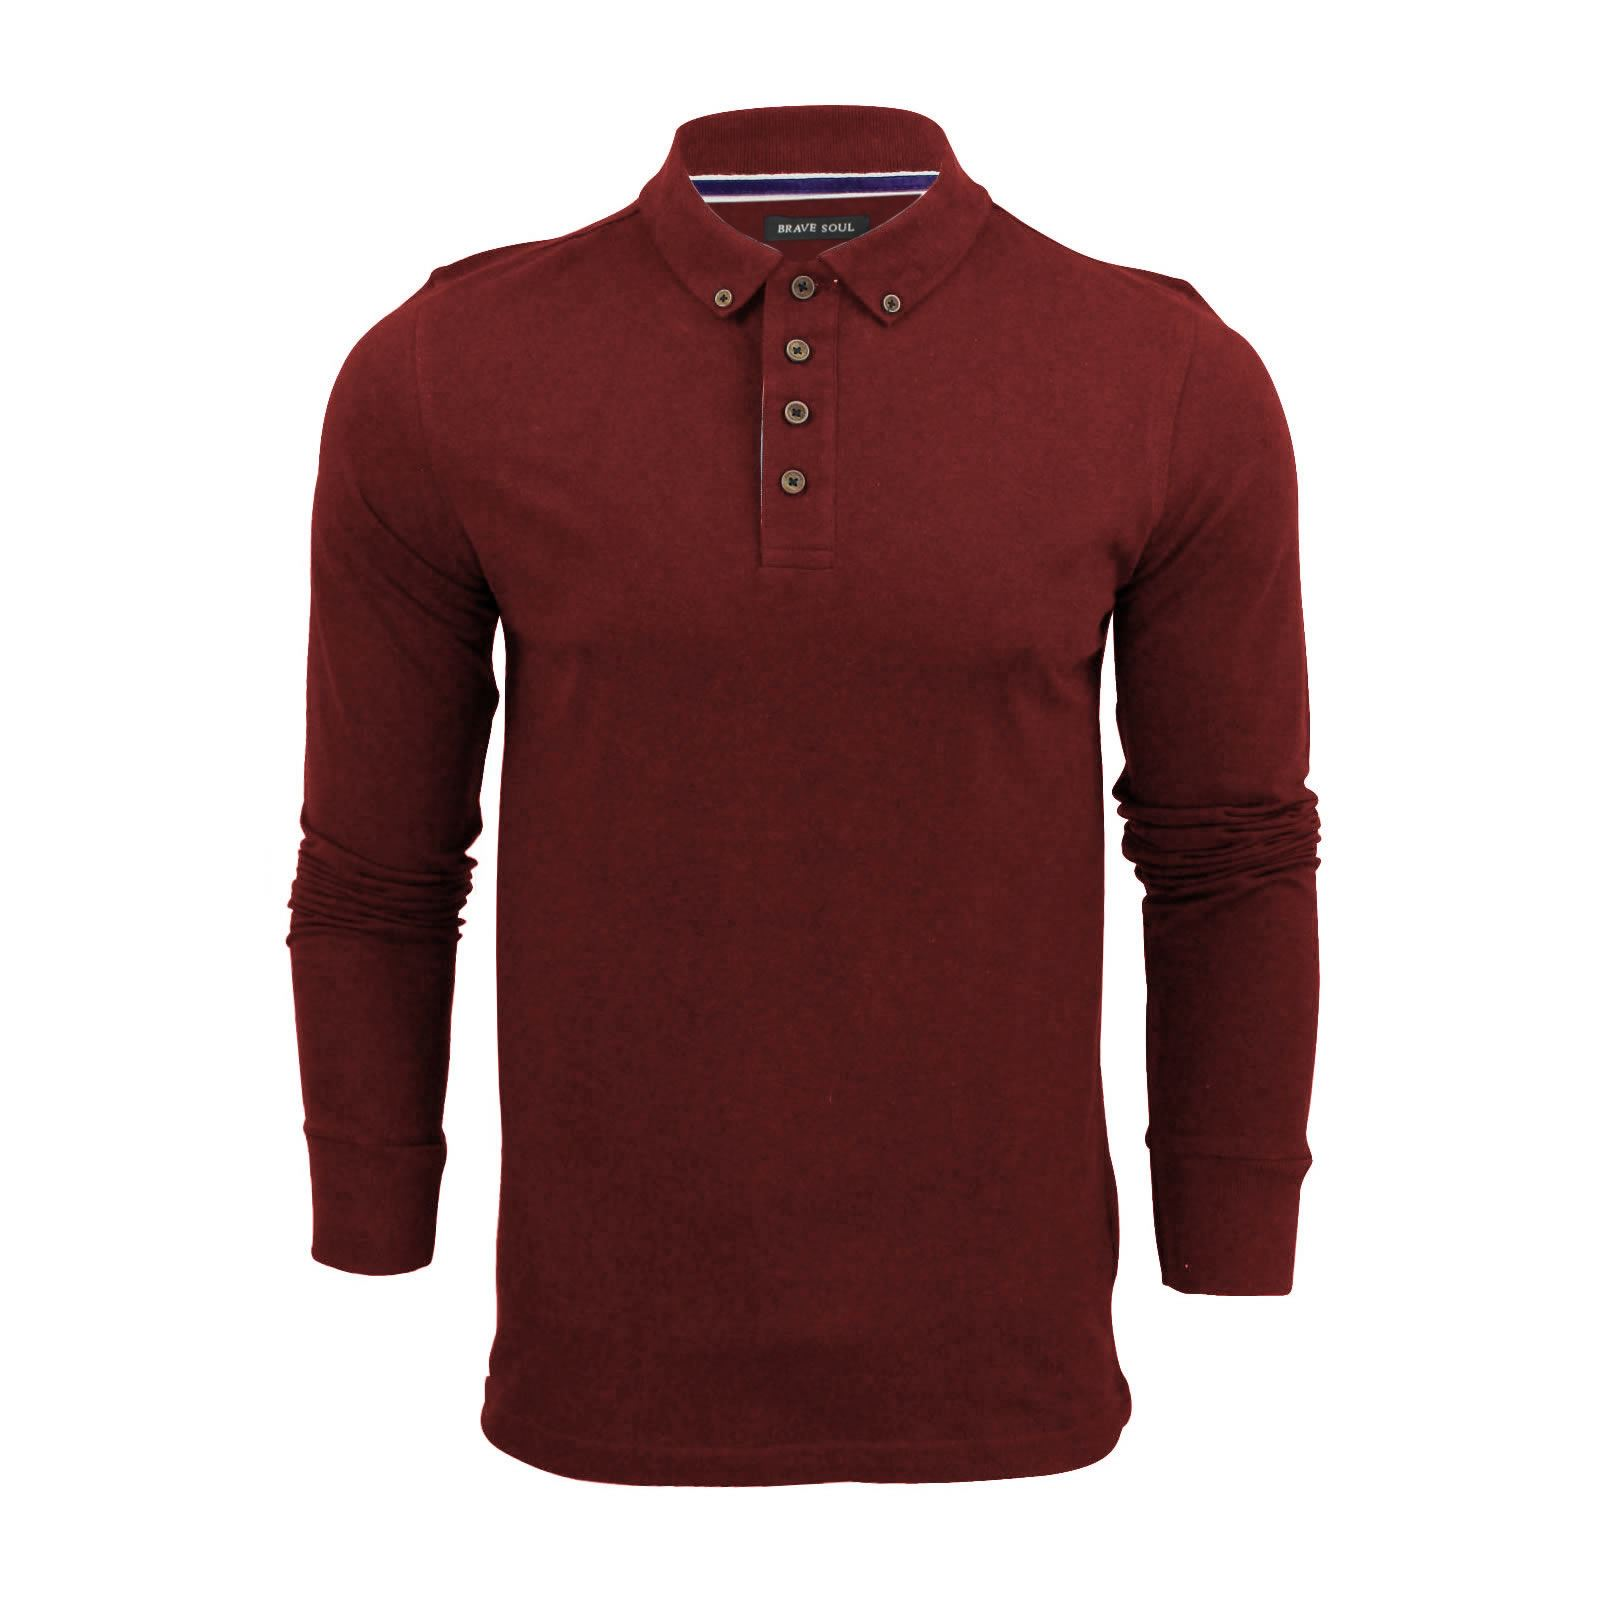 Brave-Soul-Lincoln-Homme-Polo-Shirt-a-Manches-Longues-En-Coton-Pique-Top-Casual miniature 24